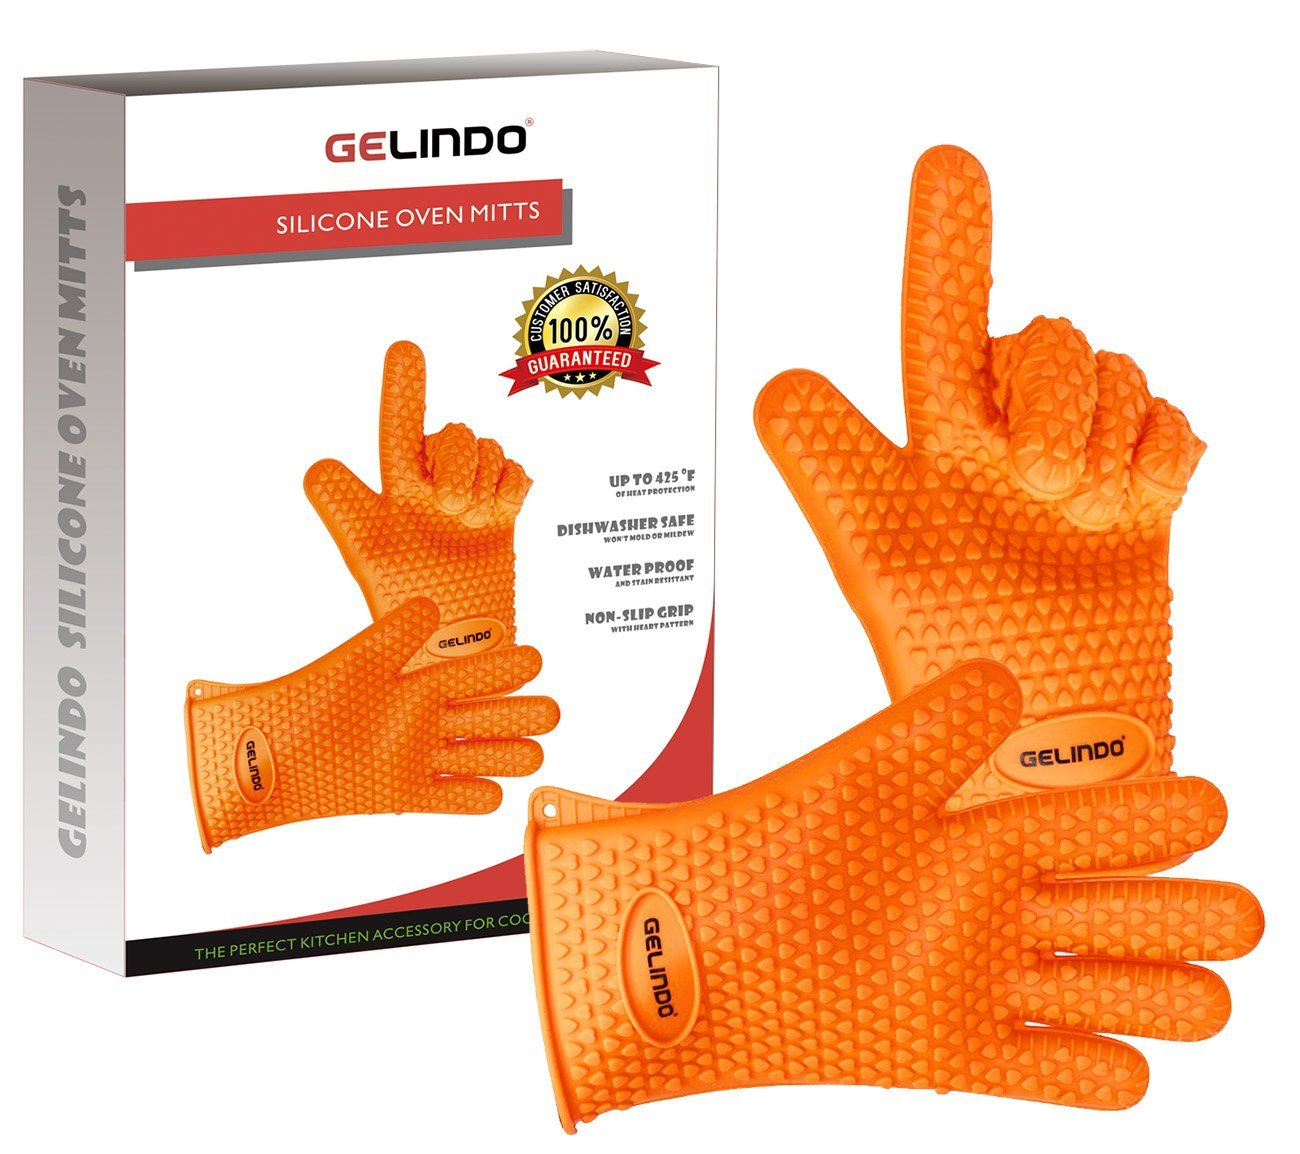 Gelindo Silicone Oven Mitts, 1 Pair, FDA Approved BBQ Insulated Gloves w/ 5-Finger Anti Slip Grip – Best for Grilling & Holding Hot Pots- Heat Resistant Up to 425° -Waterproof, BPA-Free & Eco-friendly